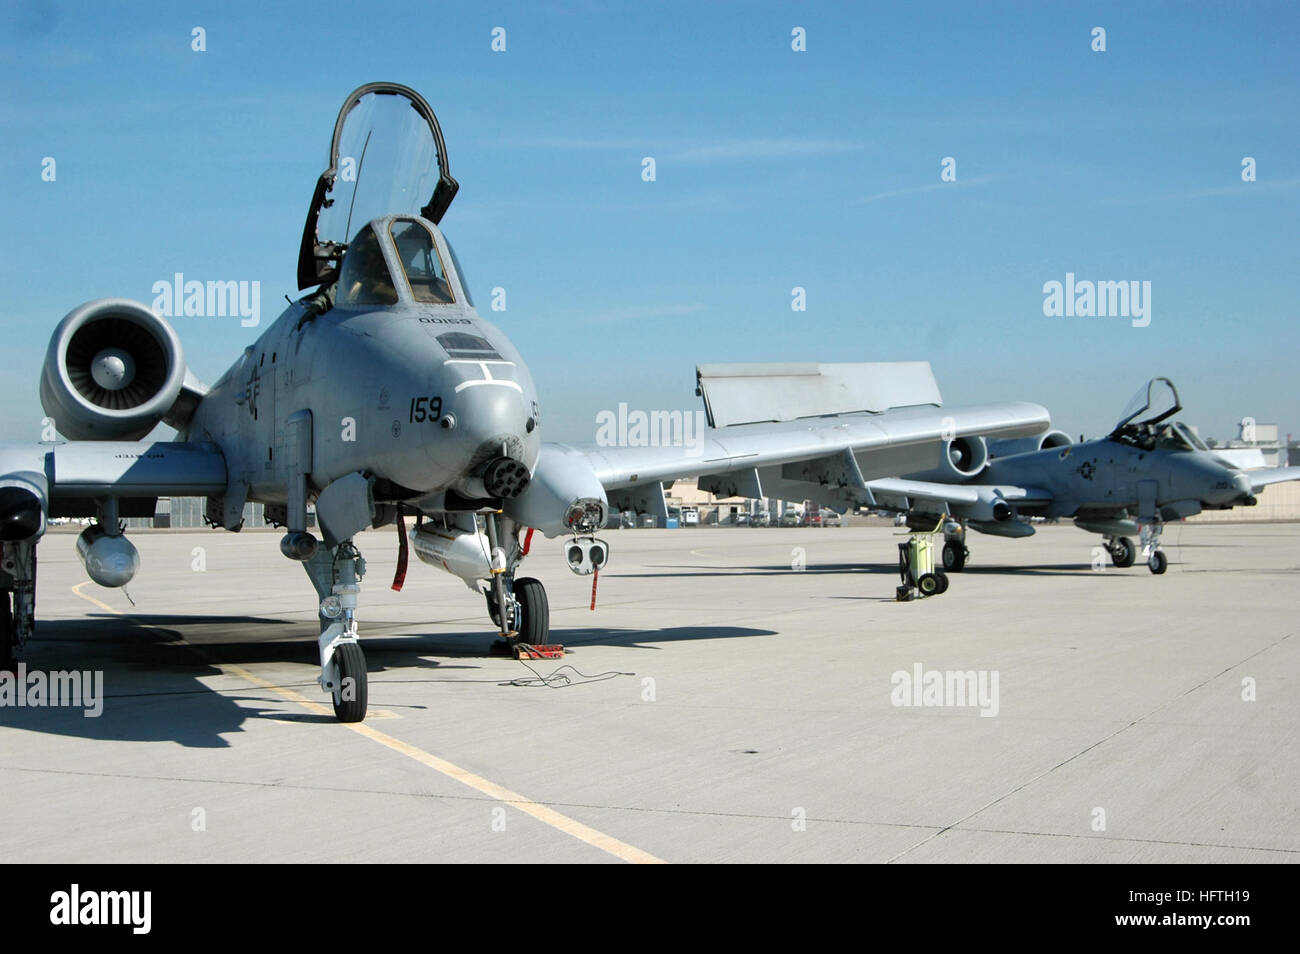 070308-N-4047W-097 SAN DIEGO (March 8, 2007) - Air Force A-10s assigned to Davis Monthan Air Force Base in Tucson, - Stock Image